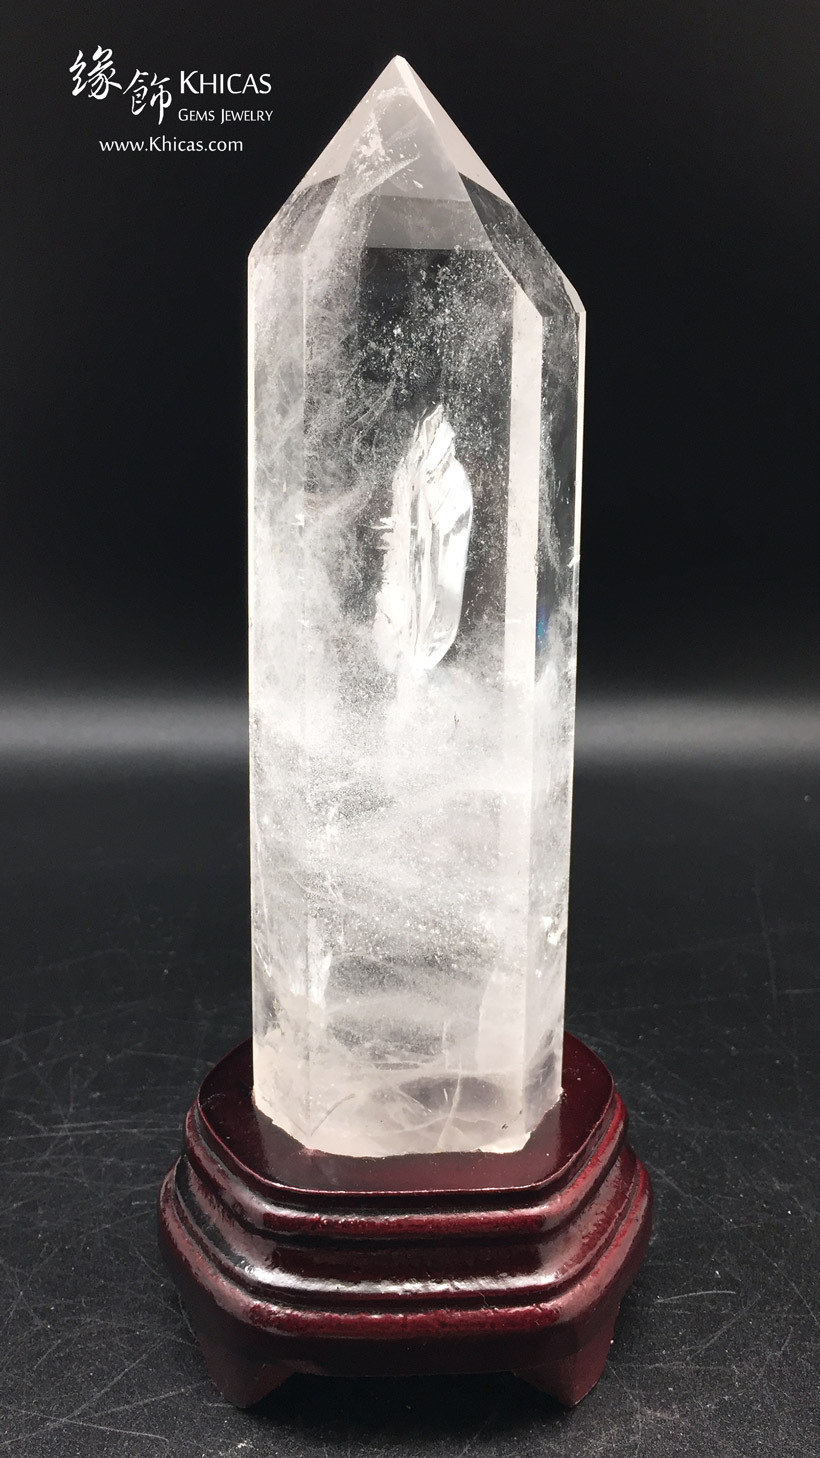 巴西白水晶柱 White Crystal Quartz Point CP1508048-581 @ Khicas Gems Jewelry 緣飾天然水晶